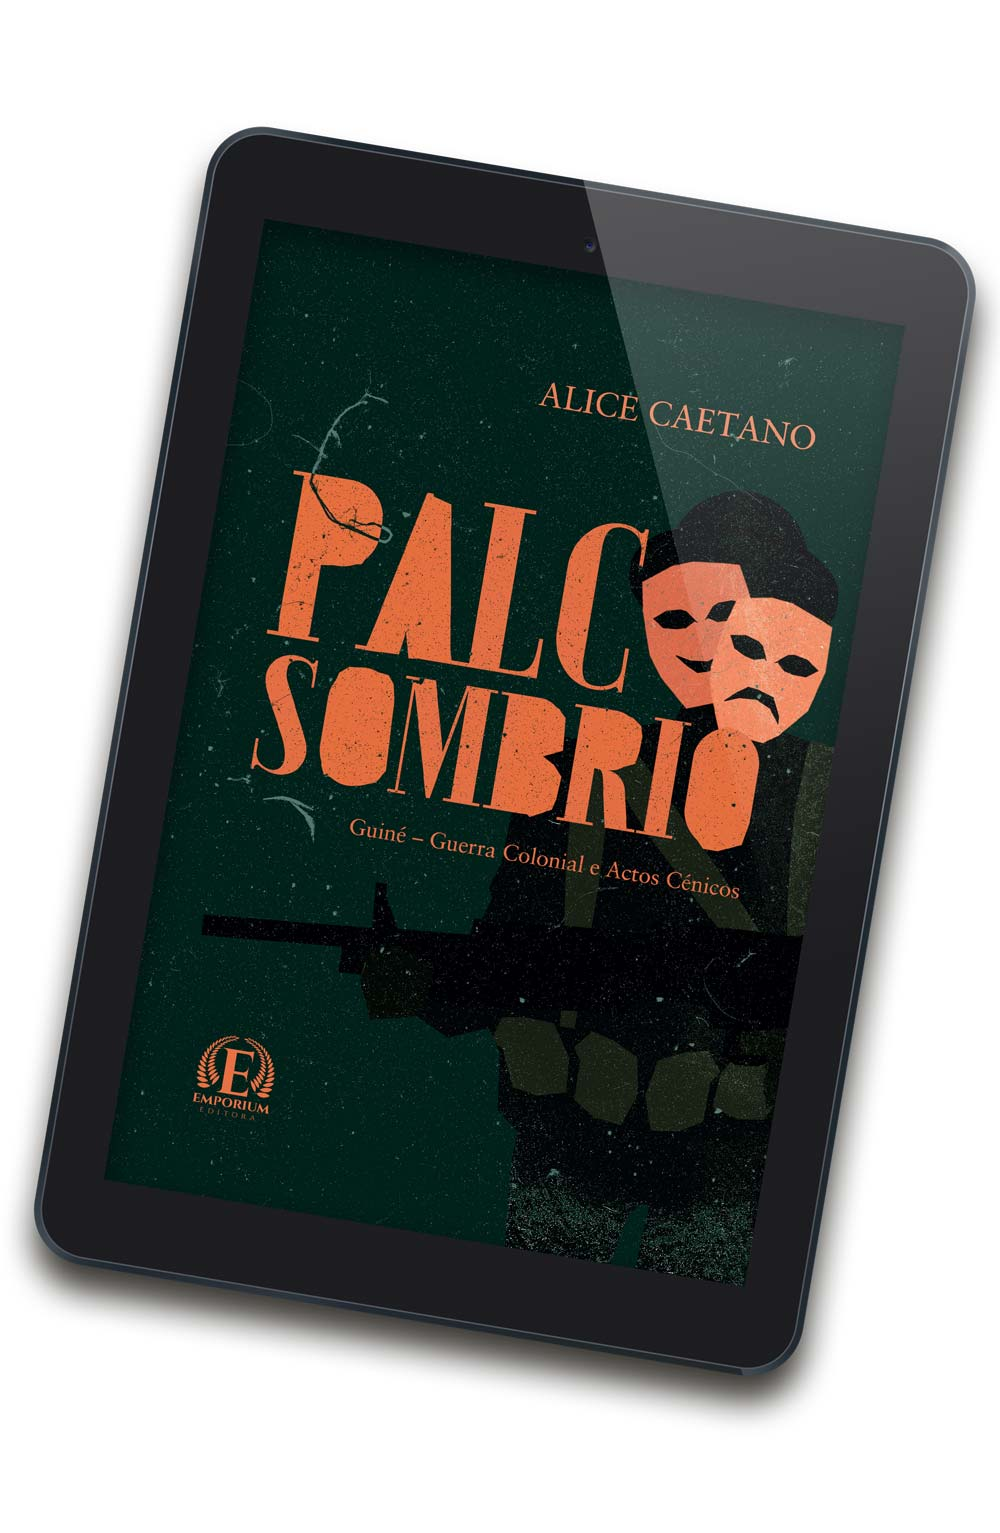 Ebook - Palco Sombrio